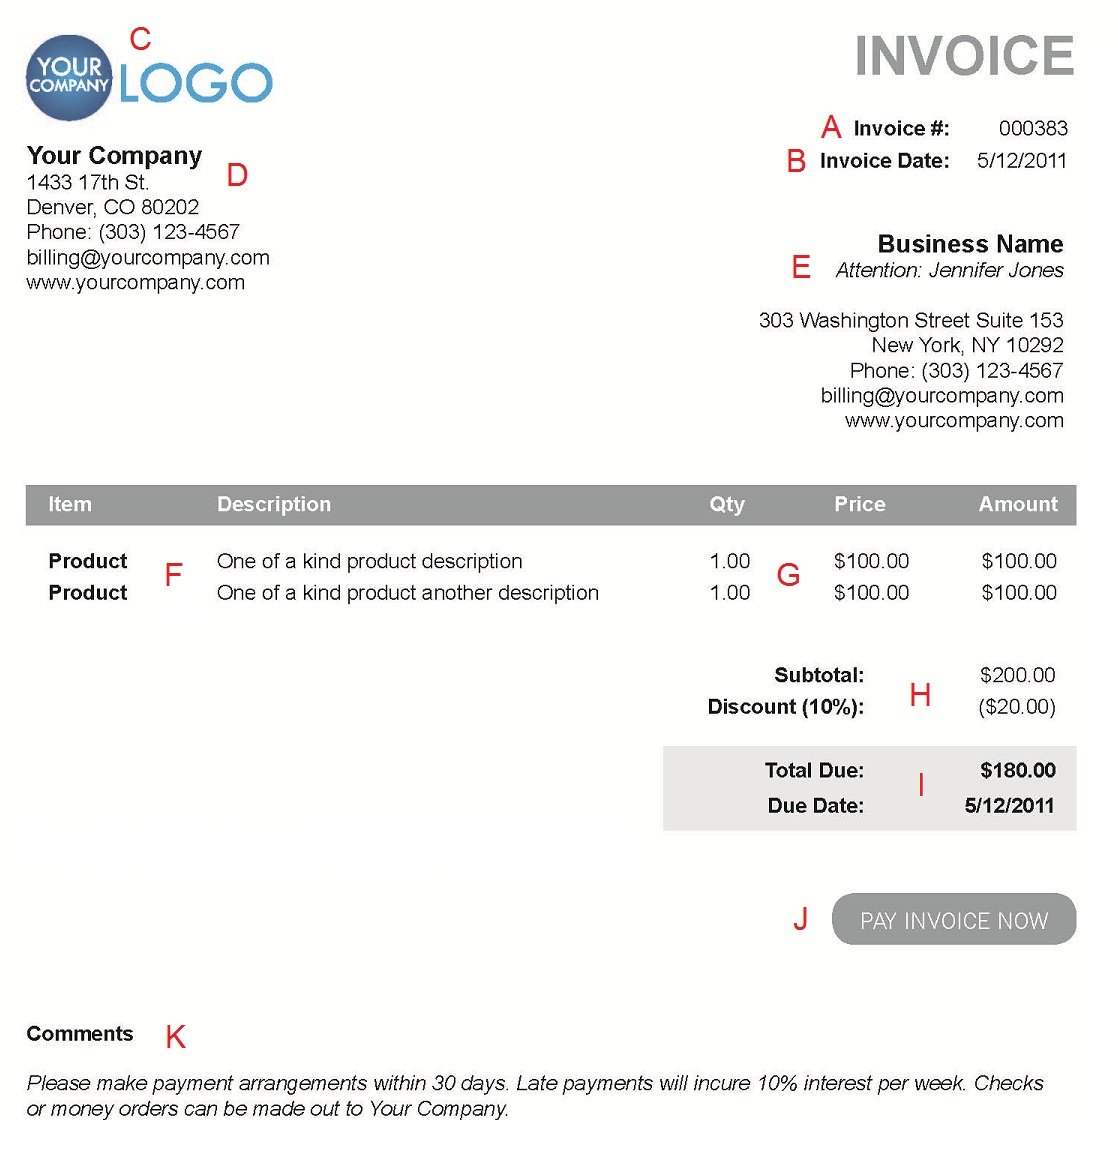 Coolmathgamesus  Pretty The  Different Sections Of An Electronic Payment Invoice With Foxy A  With Amazing Online Receipt For Lic Premium Also Biscuits Receipts In Addition Rental Receipts Template And Neat Receipts Customer Service As Well As Sales Receipt Software Additionally Received Receipt Template From Paysimplecom With Coolmathgamesus  Foxy The  Different Sections Of An Electronic Payment Invoice With Amazing A  And Pretty Online Receipt For Lic Premium Also Biscuits Receipts In Addition Rental Receipts Template From Paysimplecom